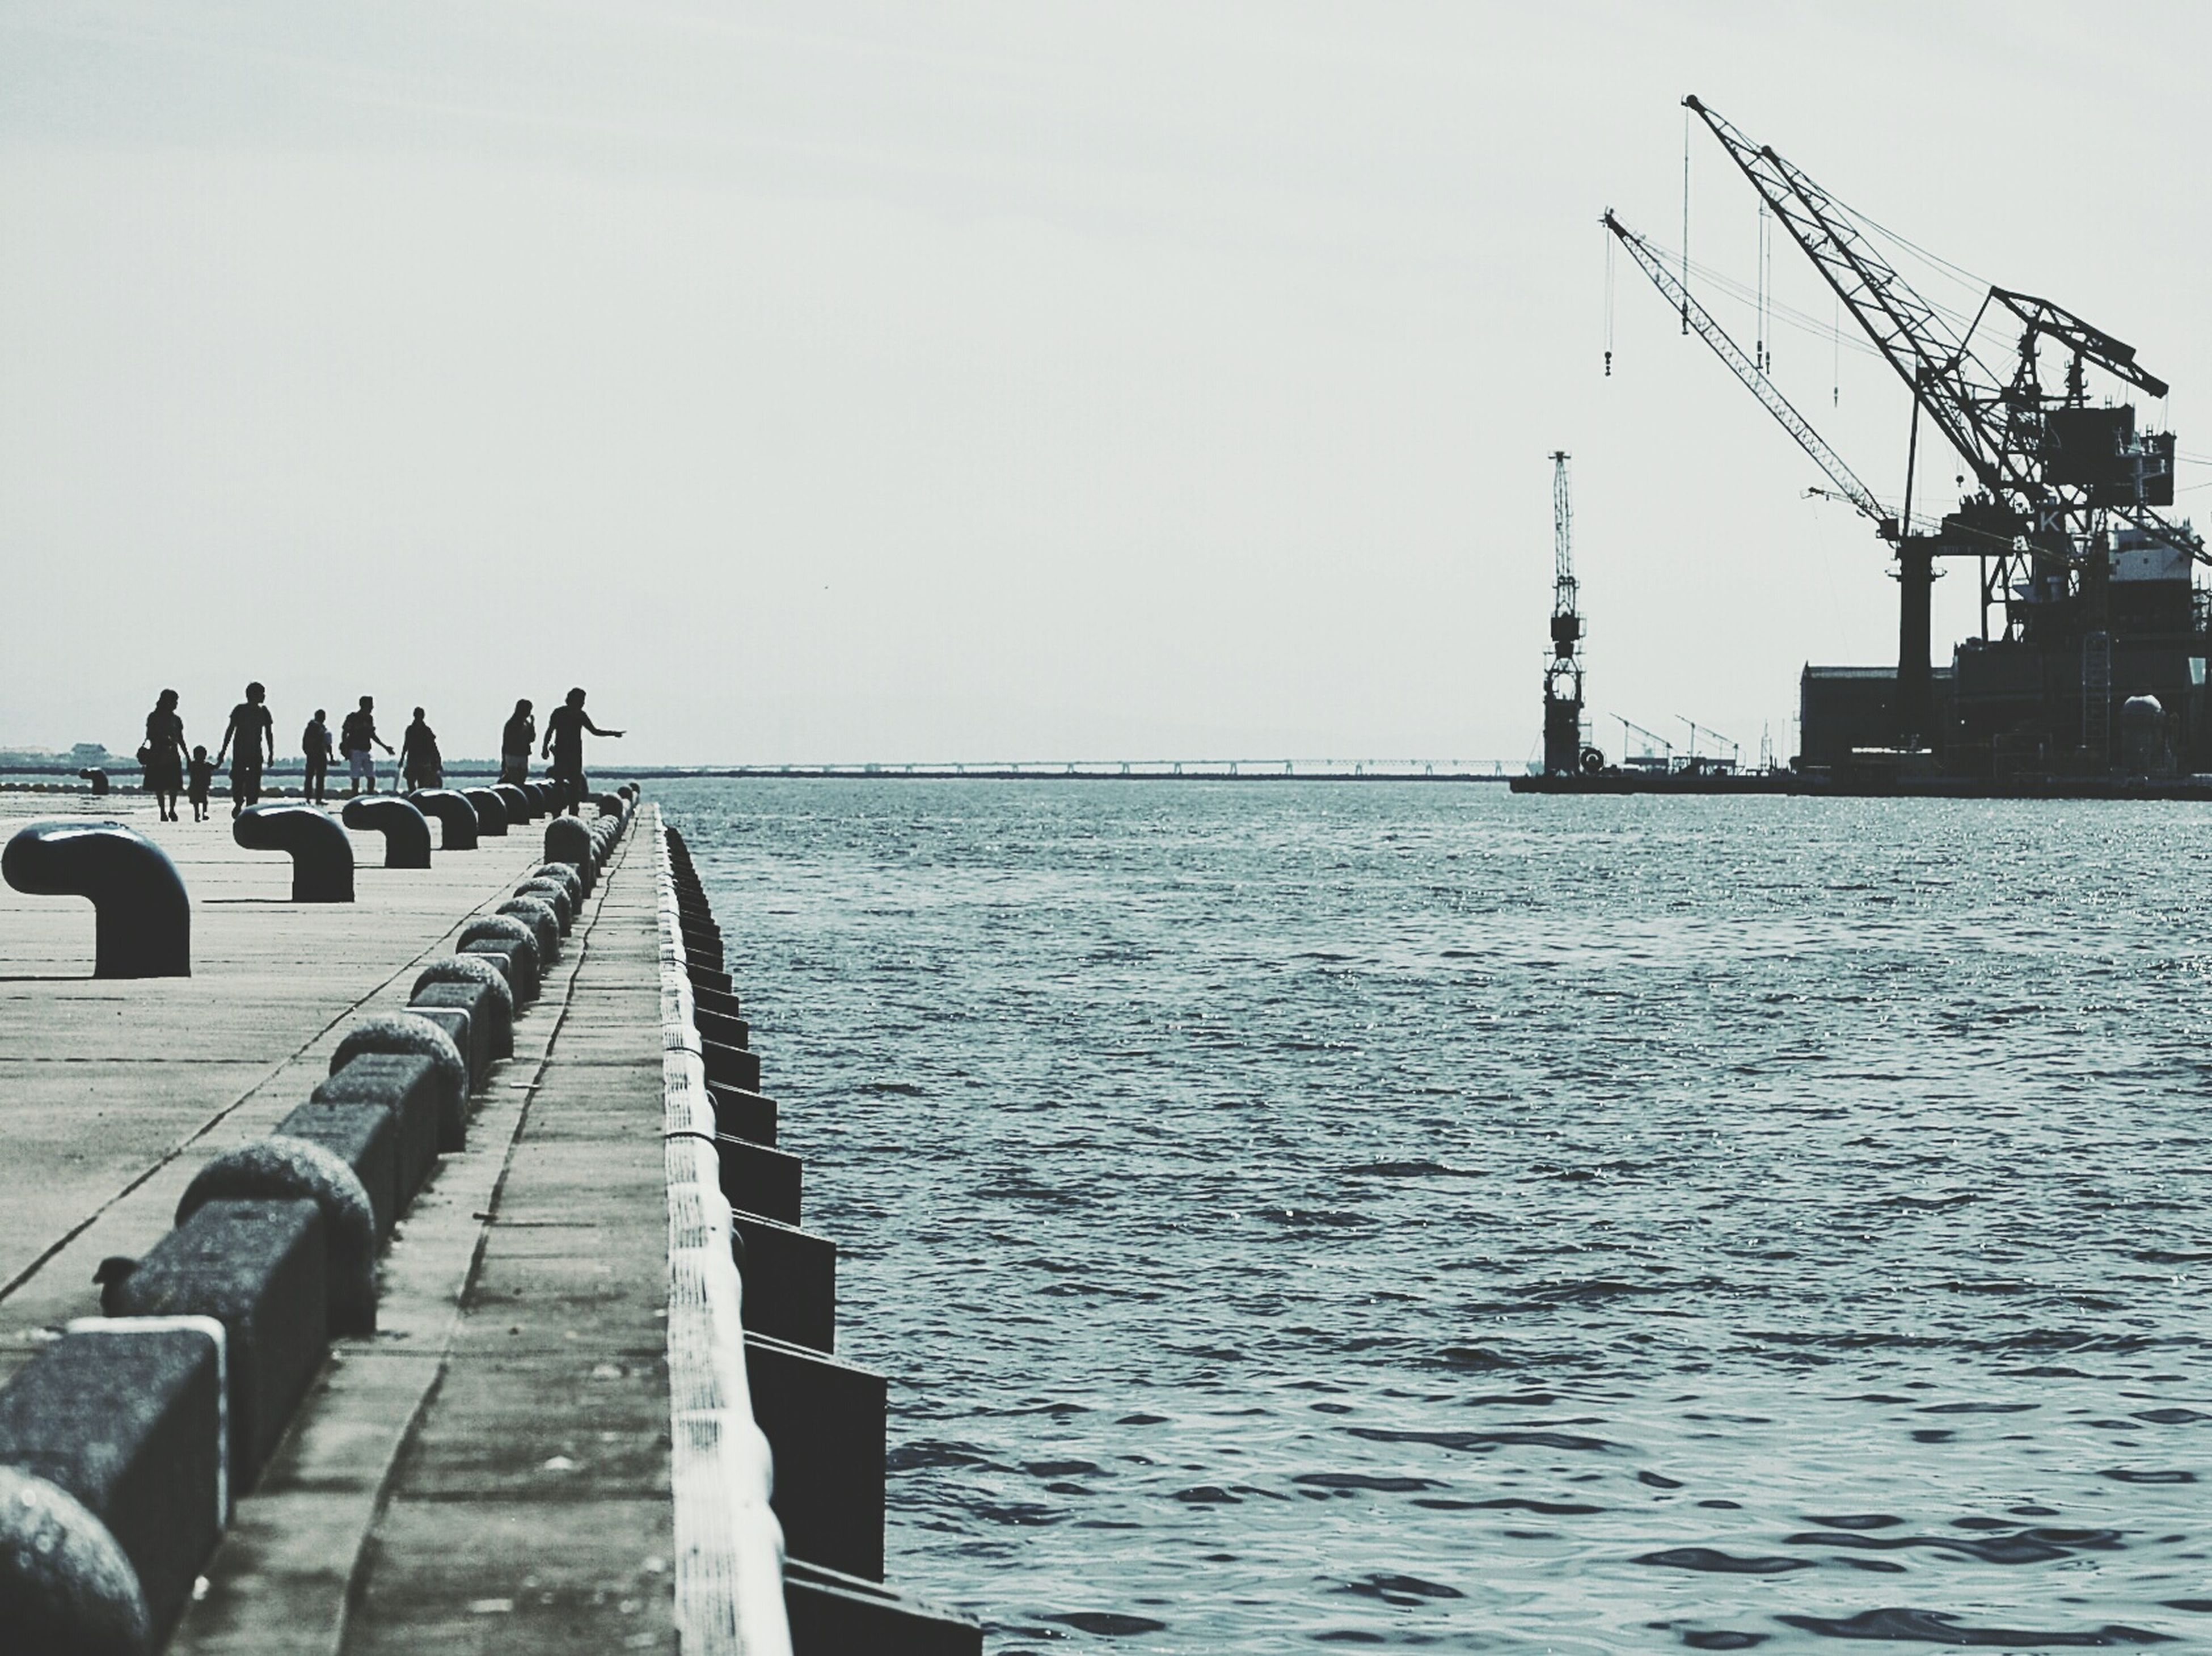 water, sea, clear sky, built structure, pier, copy space, architecture, crane - construction machinery, harbor, sky, transportation, nautical vessel, commercial dock, waterfront, outdoors, nature, day, bird, incidental people, building exterior